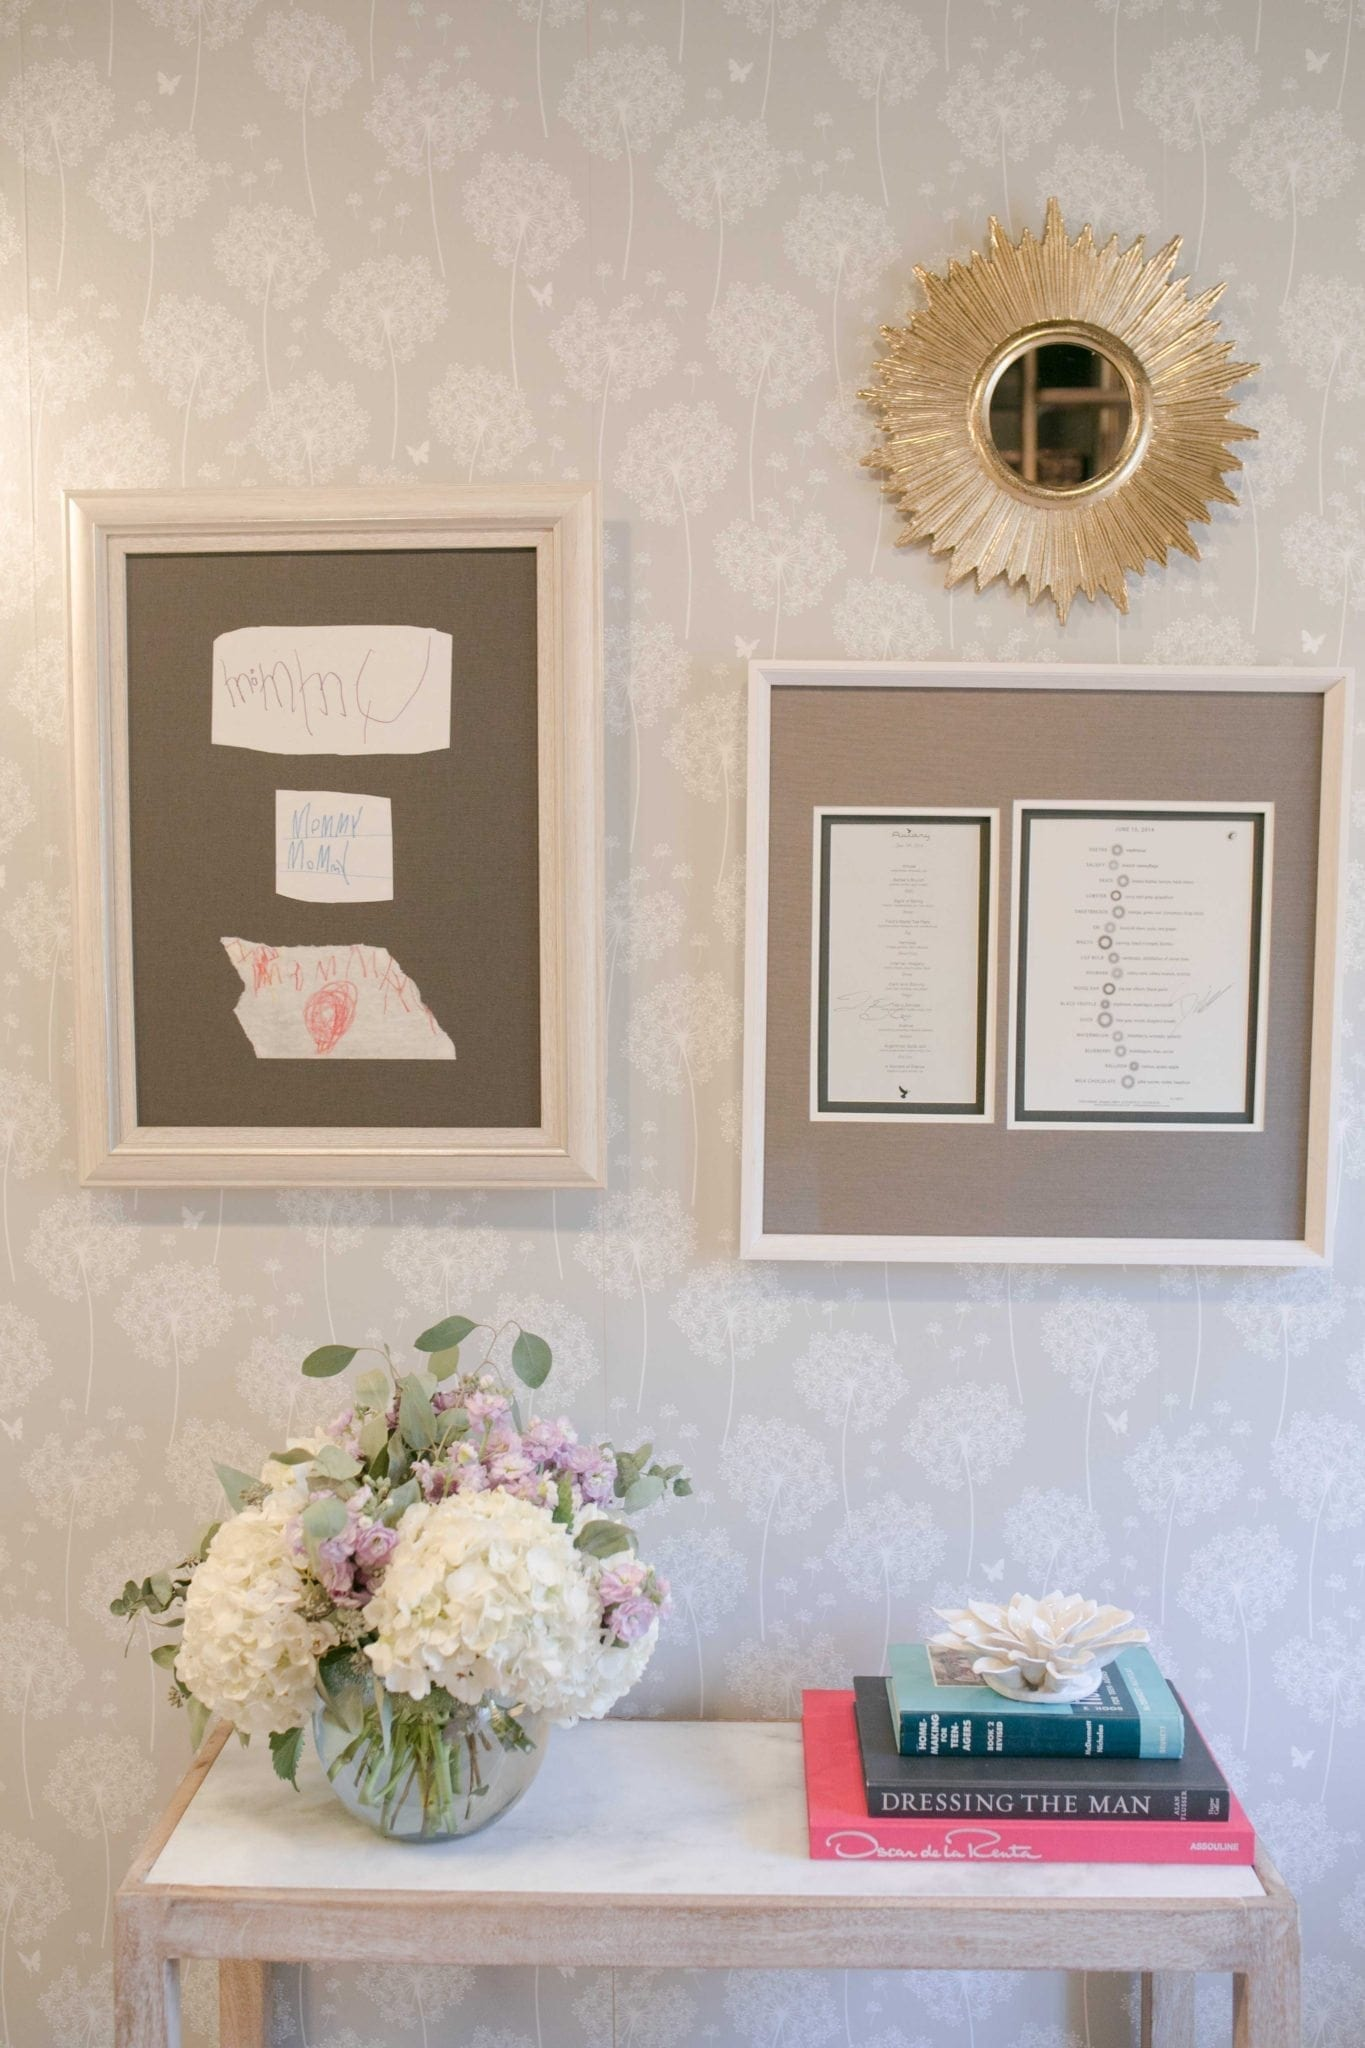 Wall pops wallpaper dandelion wallpaper hung with personal art and a gold starburst mirror and hydrangea floral arrangement on a white console table